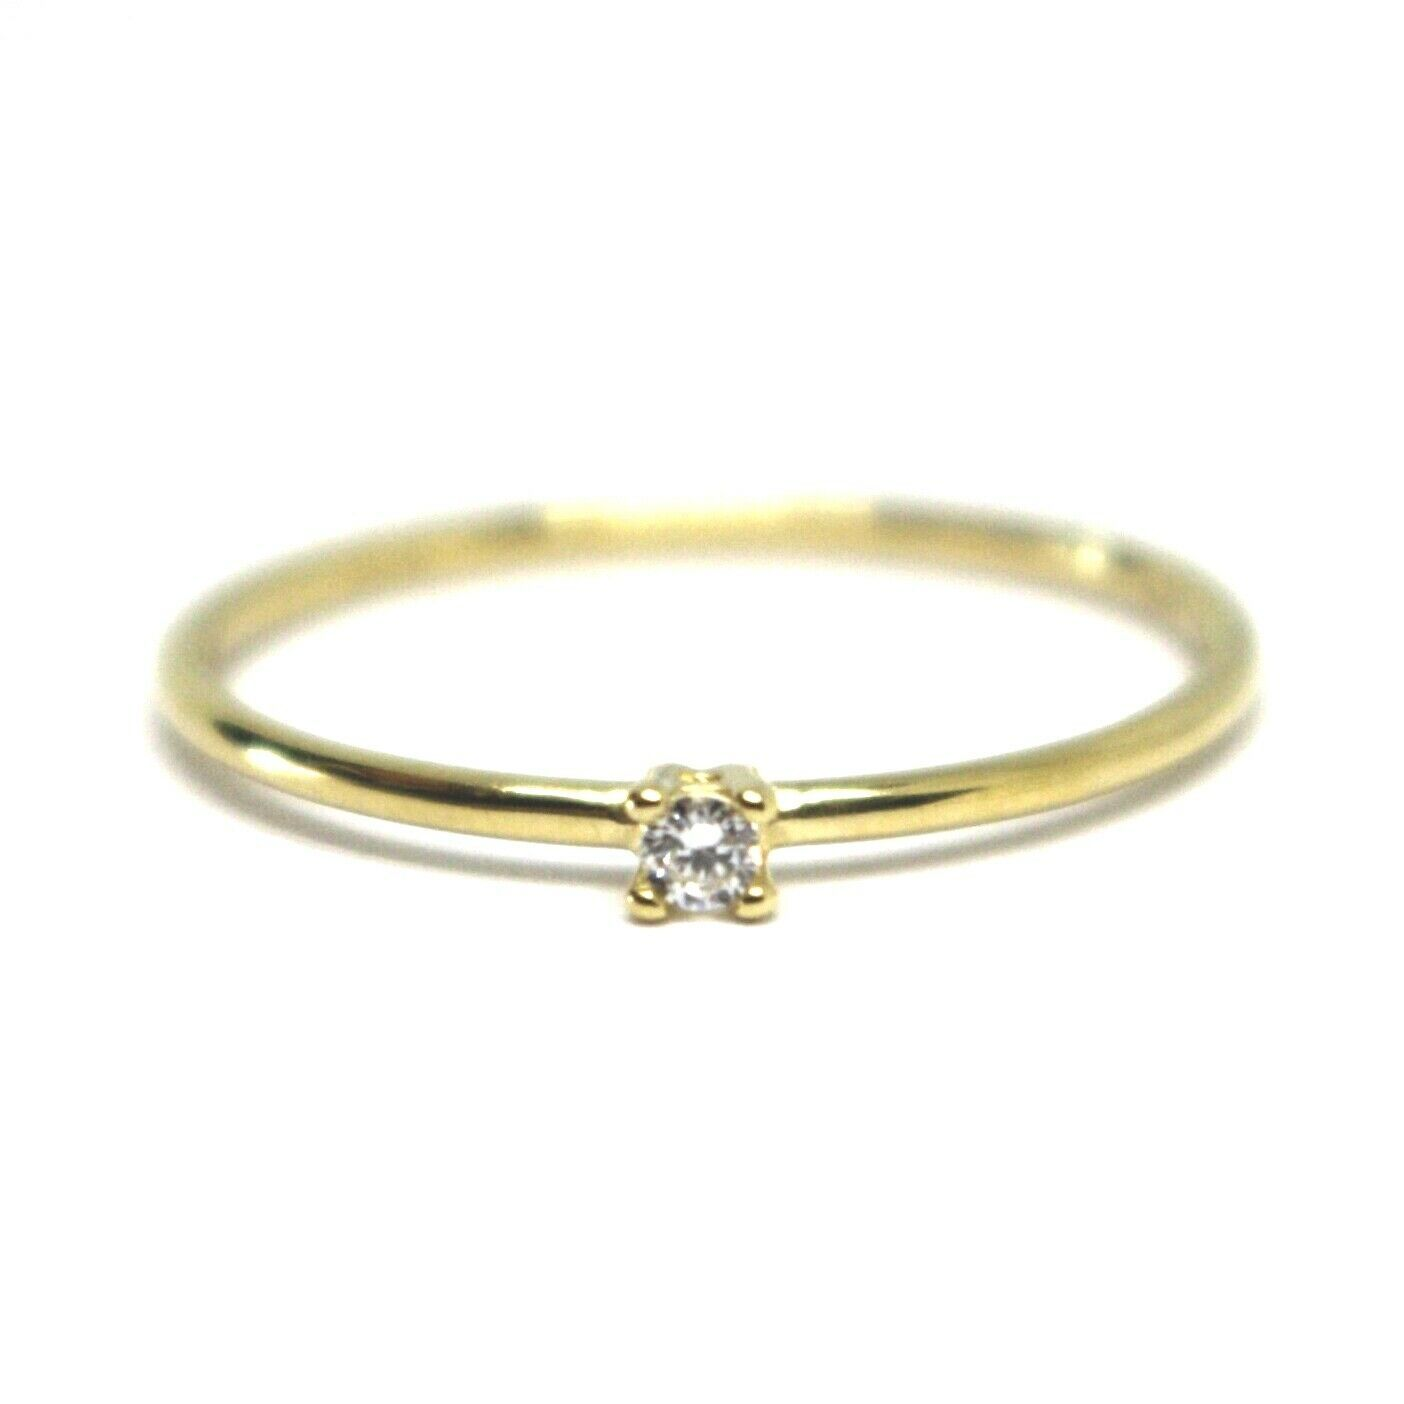 SOLID 18K YELLOW GOLD RING, MINI SOLITAIRE WITH CUBIC ZIRCONIA WIRE ROUND TUBE